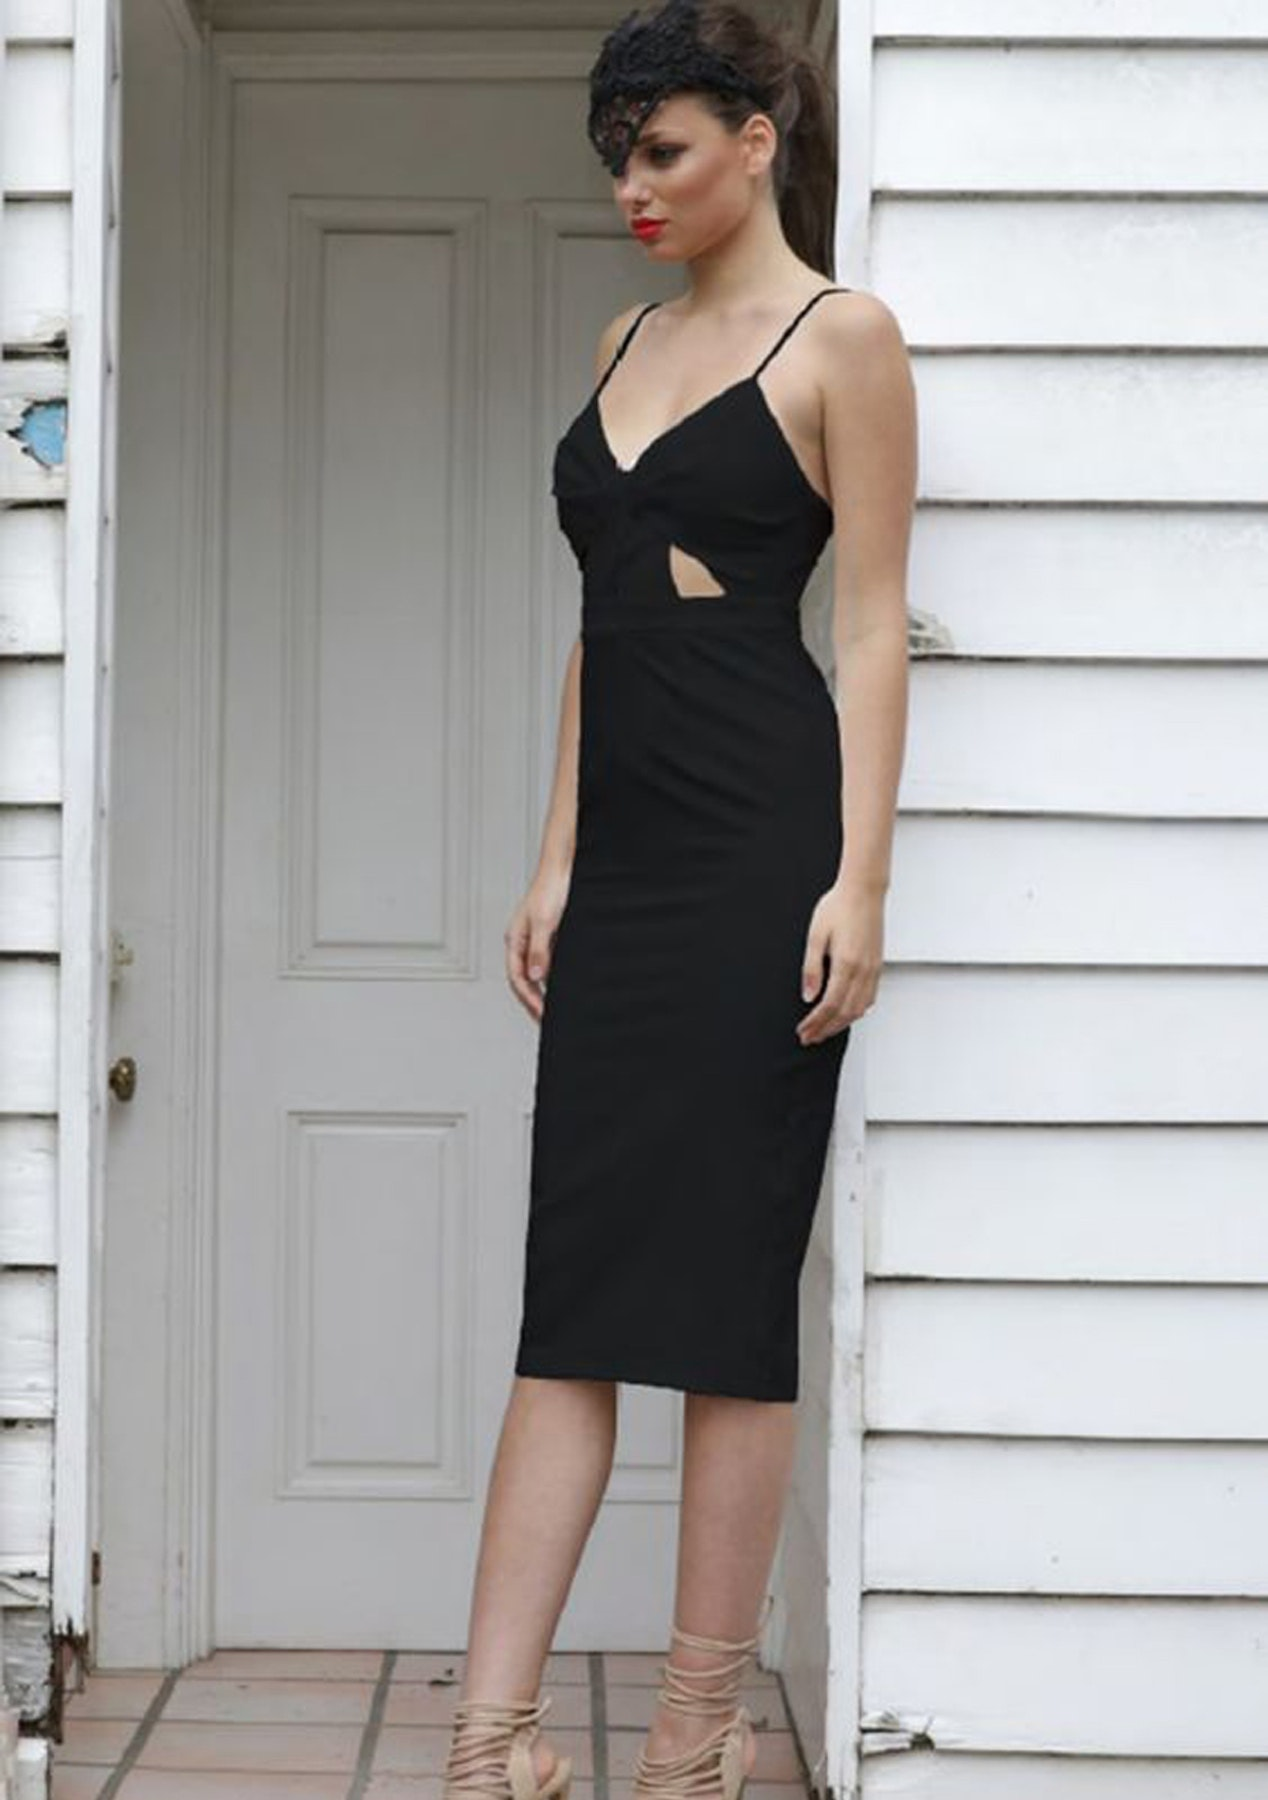 Madison - Cut Above The Rest Dress - Black